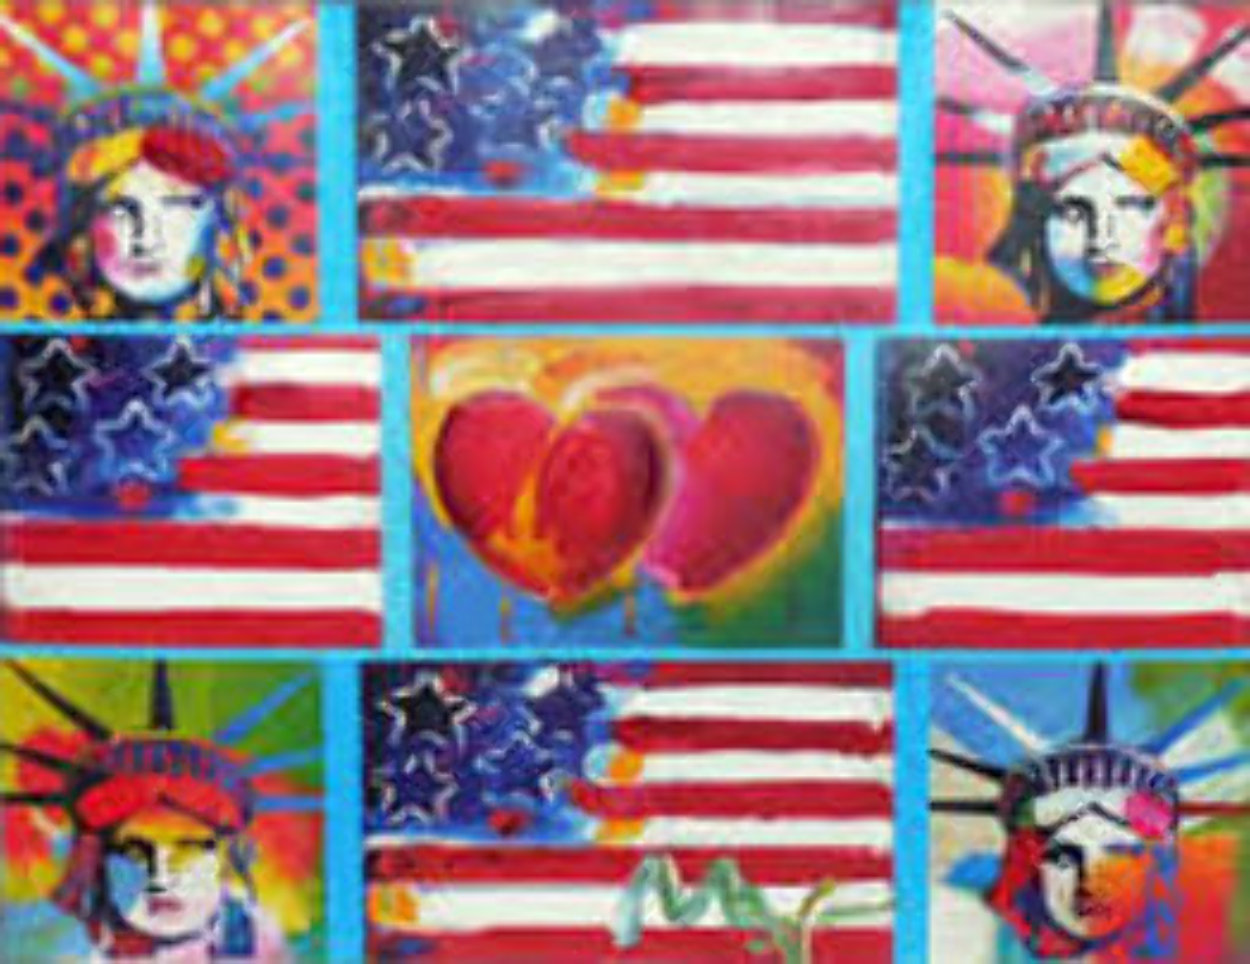 Patriotic Series, 4 Liberties, 4 Flags, And 2 Hearts Unique 2006 15x19 Works on Paper (not prints) by Peter Max